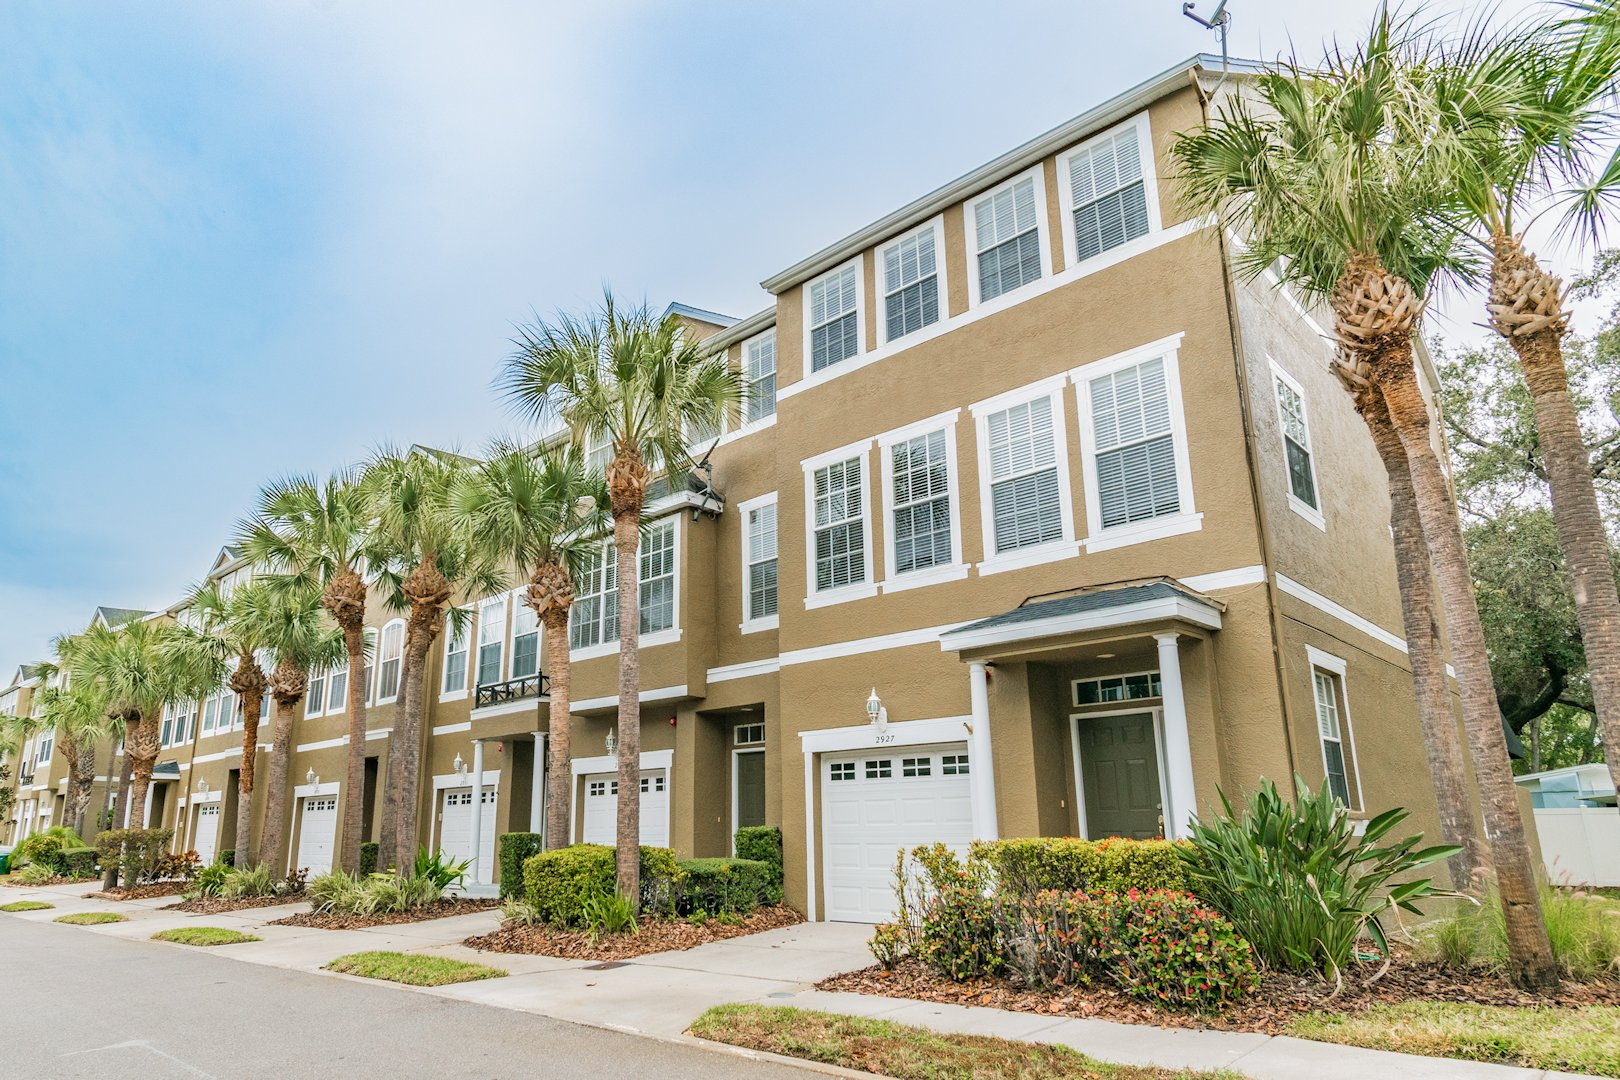 2929 bayshore Pointe Dr. Tampa Fl, Bayshore Pointe Townhomes (2)